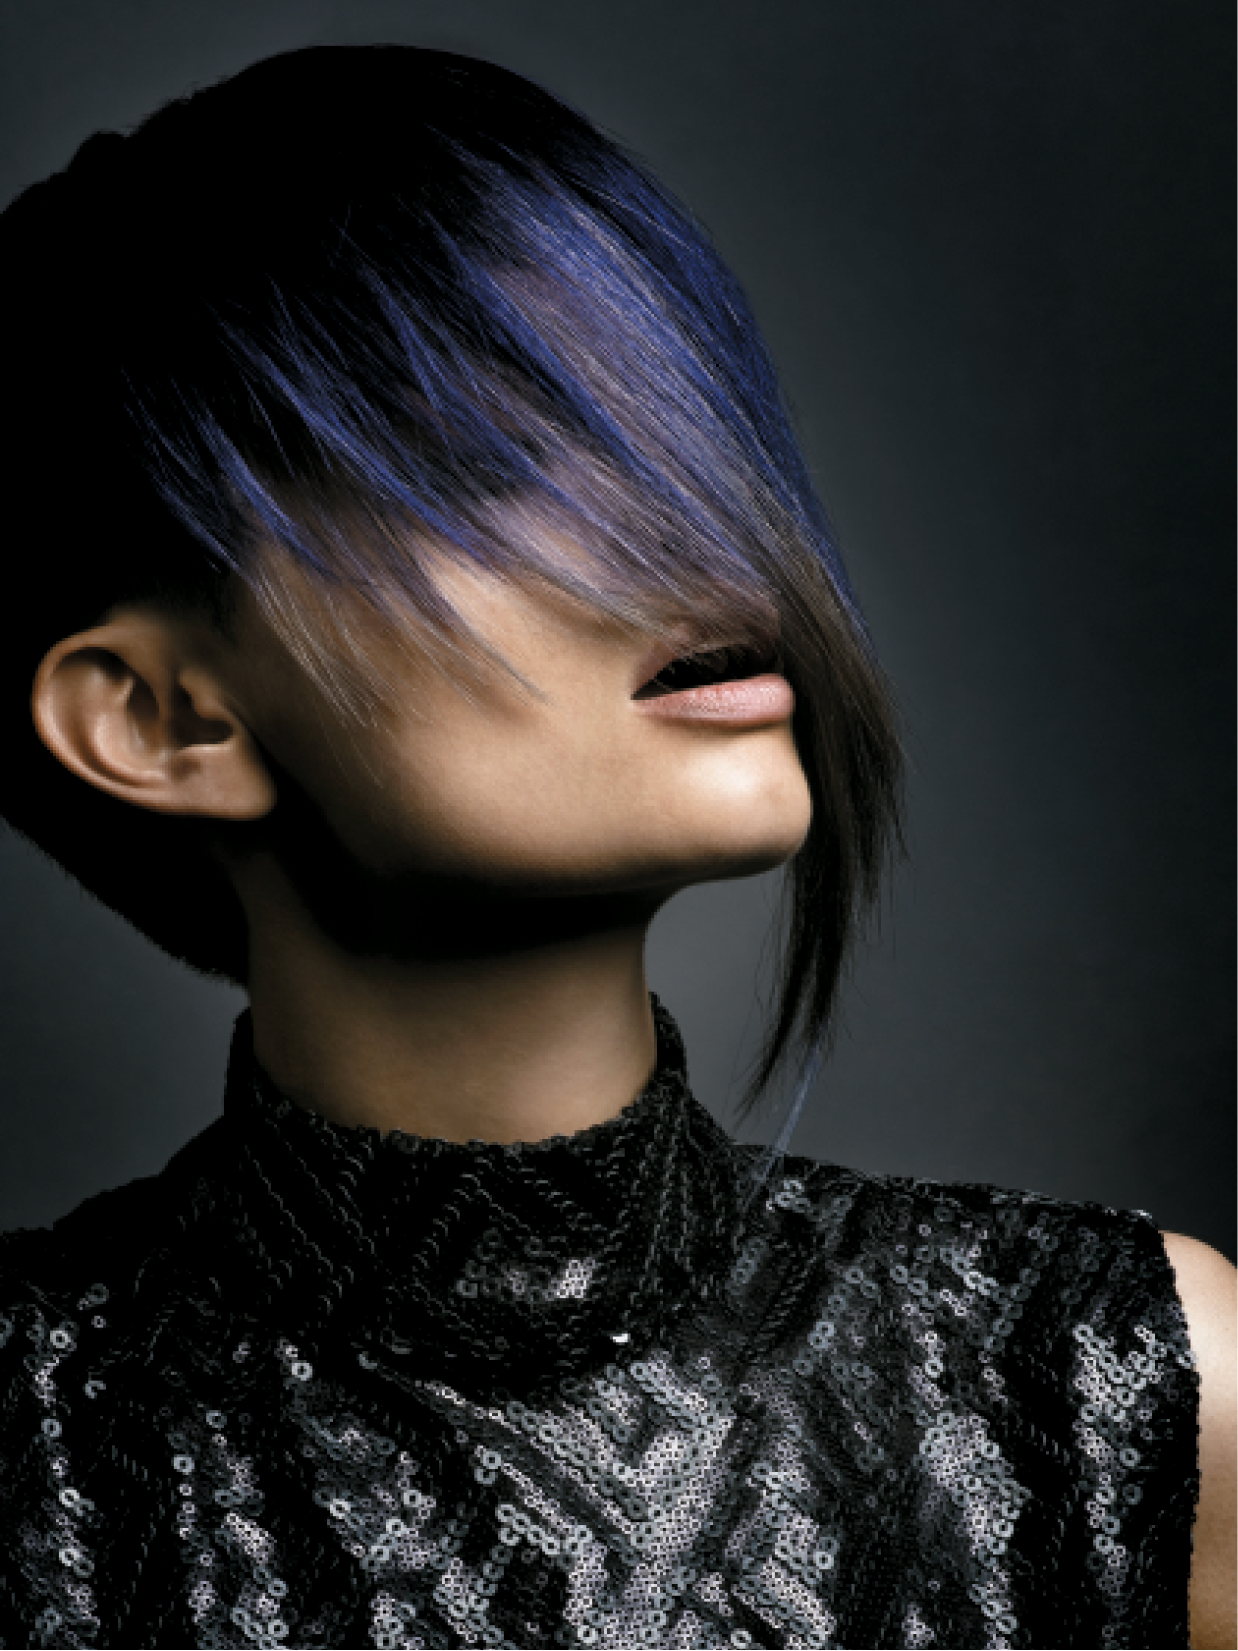 For this strong look, Liam Baxter chose a dark blue feature panel that runs through the sides of the hair, which offers the option to either show it off or keep it hidden.